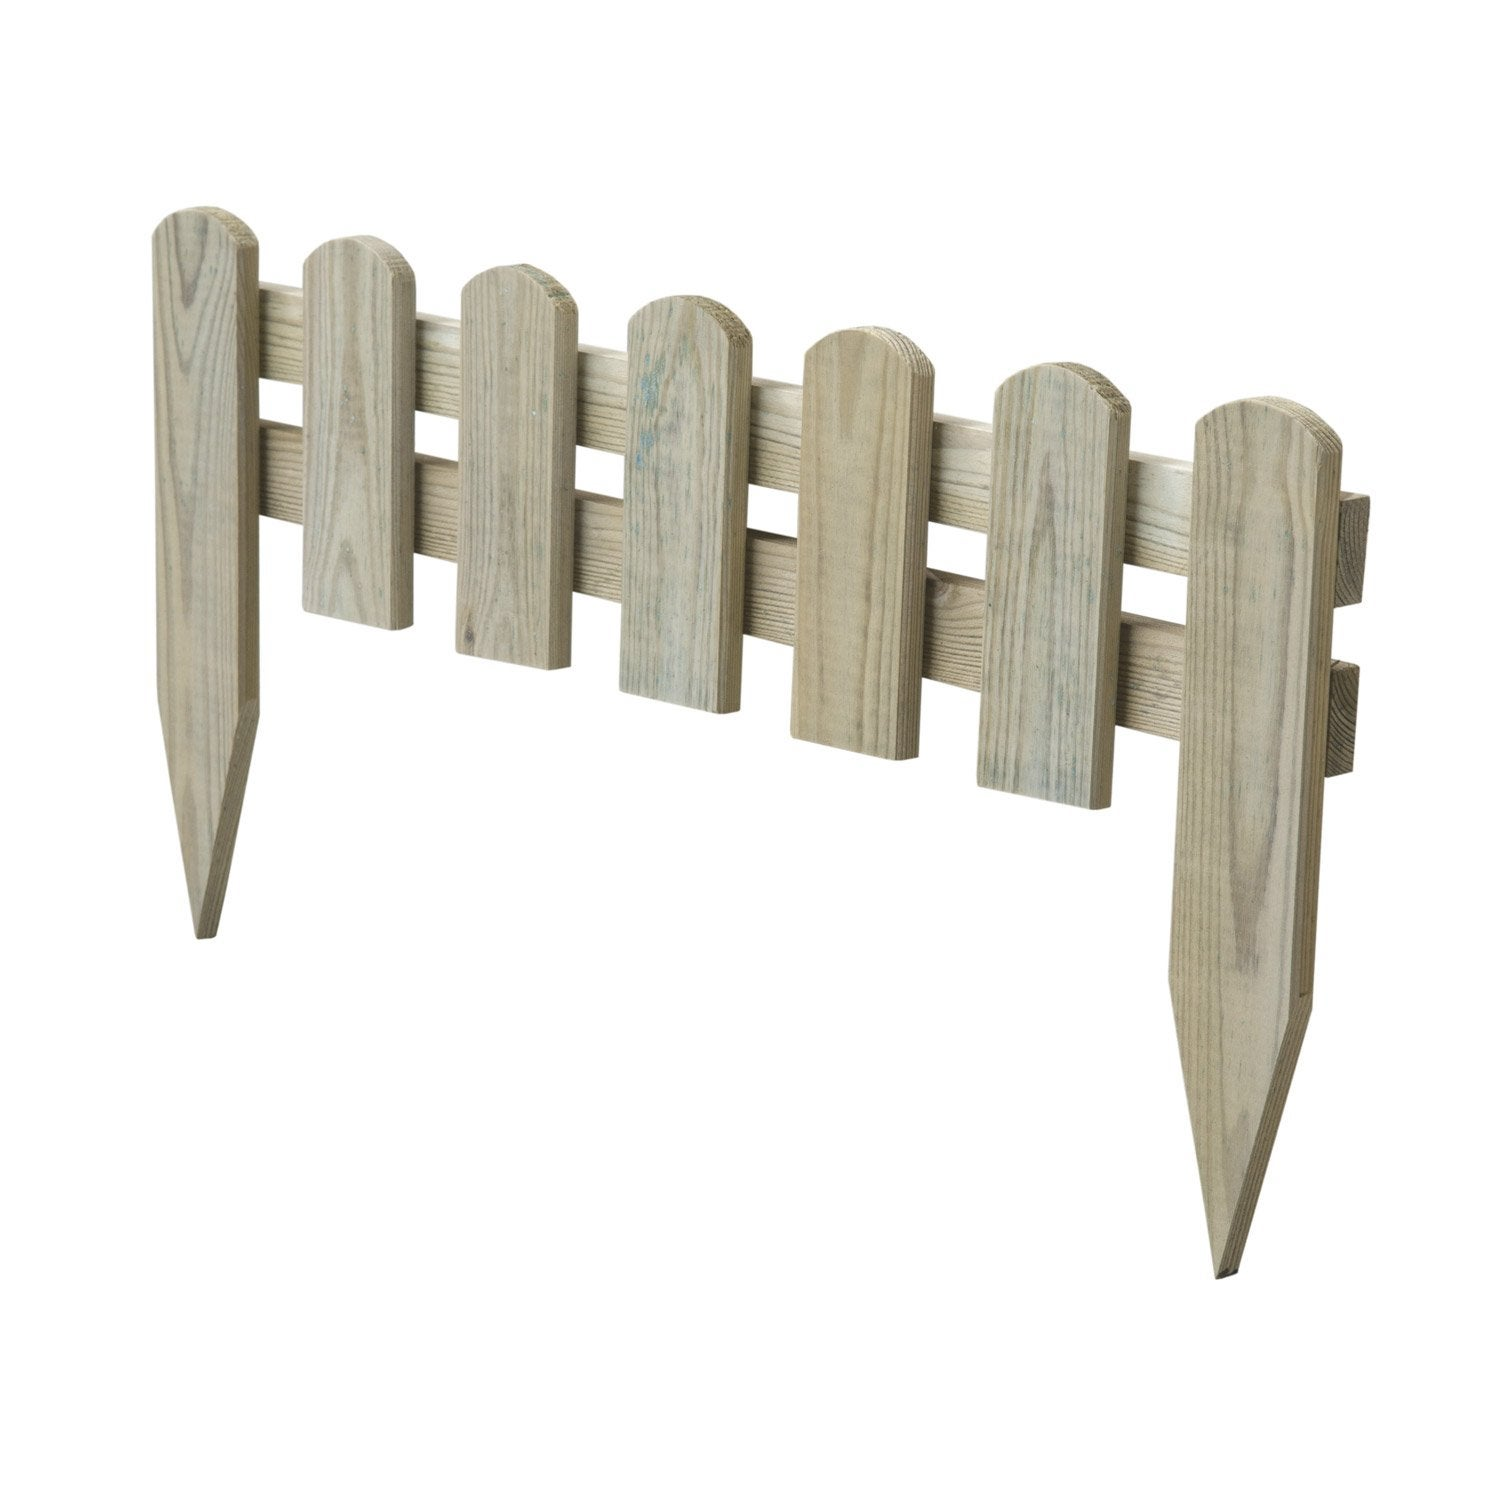 Bordure planter stackette bois naturel x cm leroy merlin - Barriere bois jardin leroy merlin ...